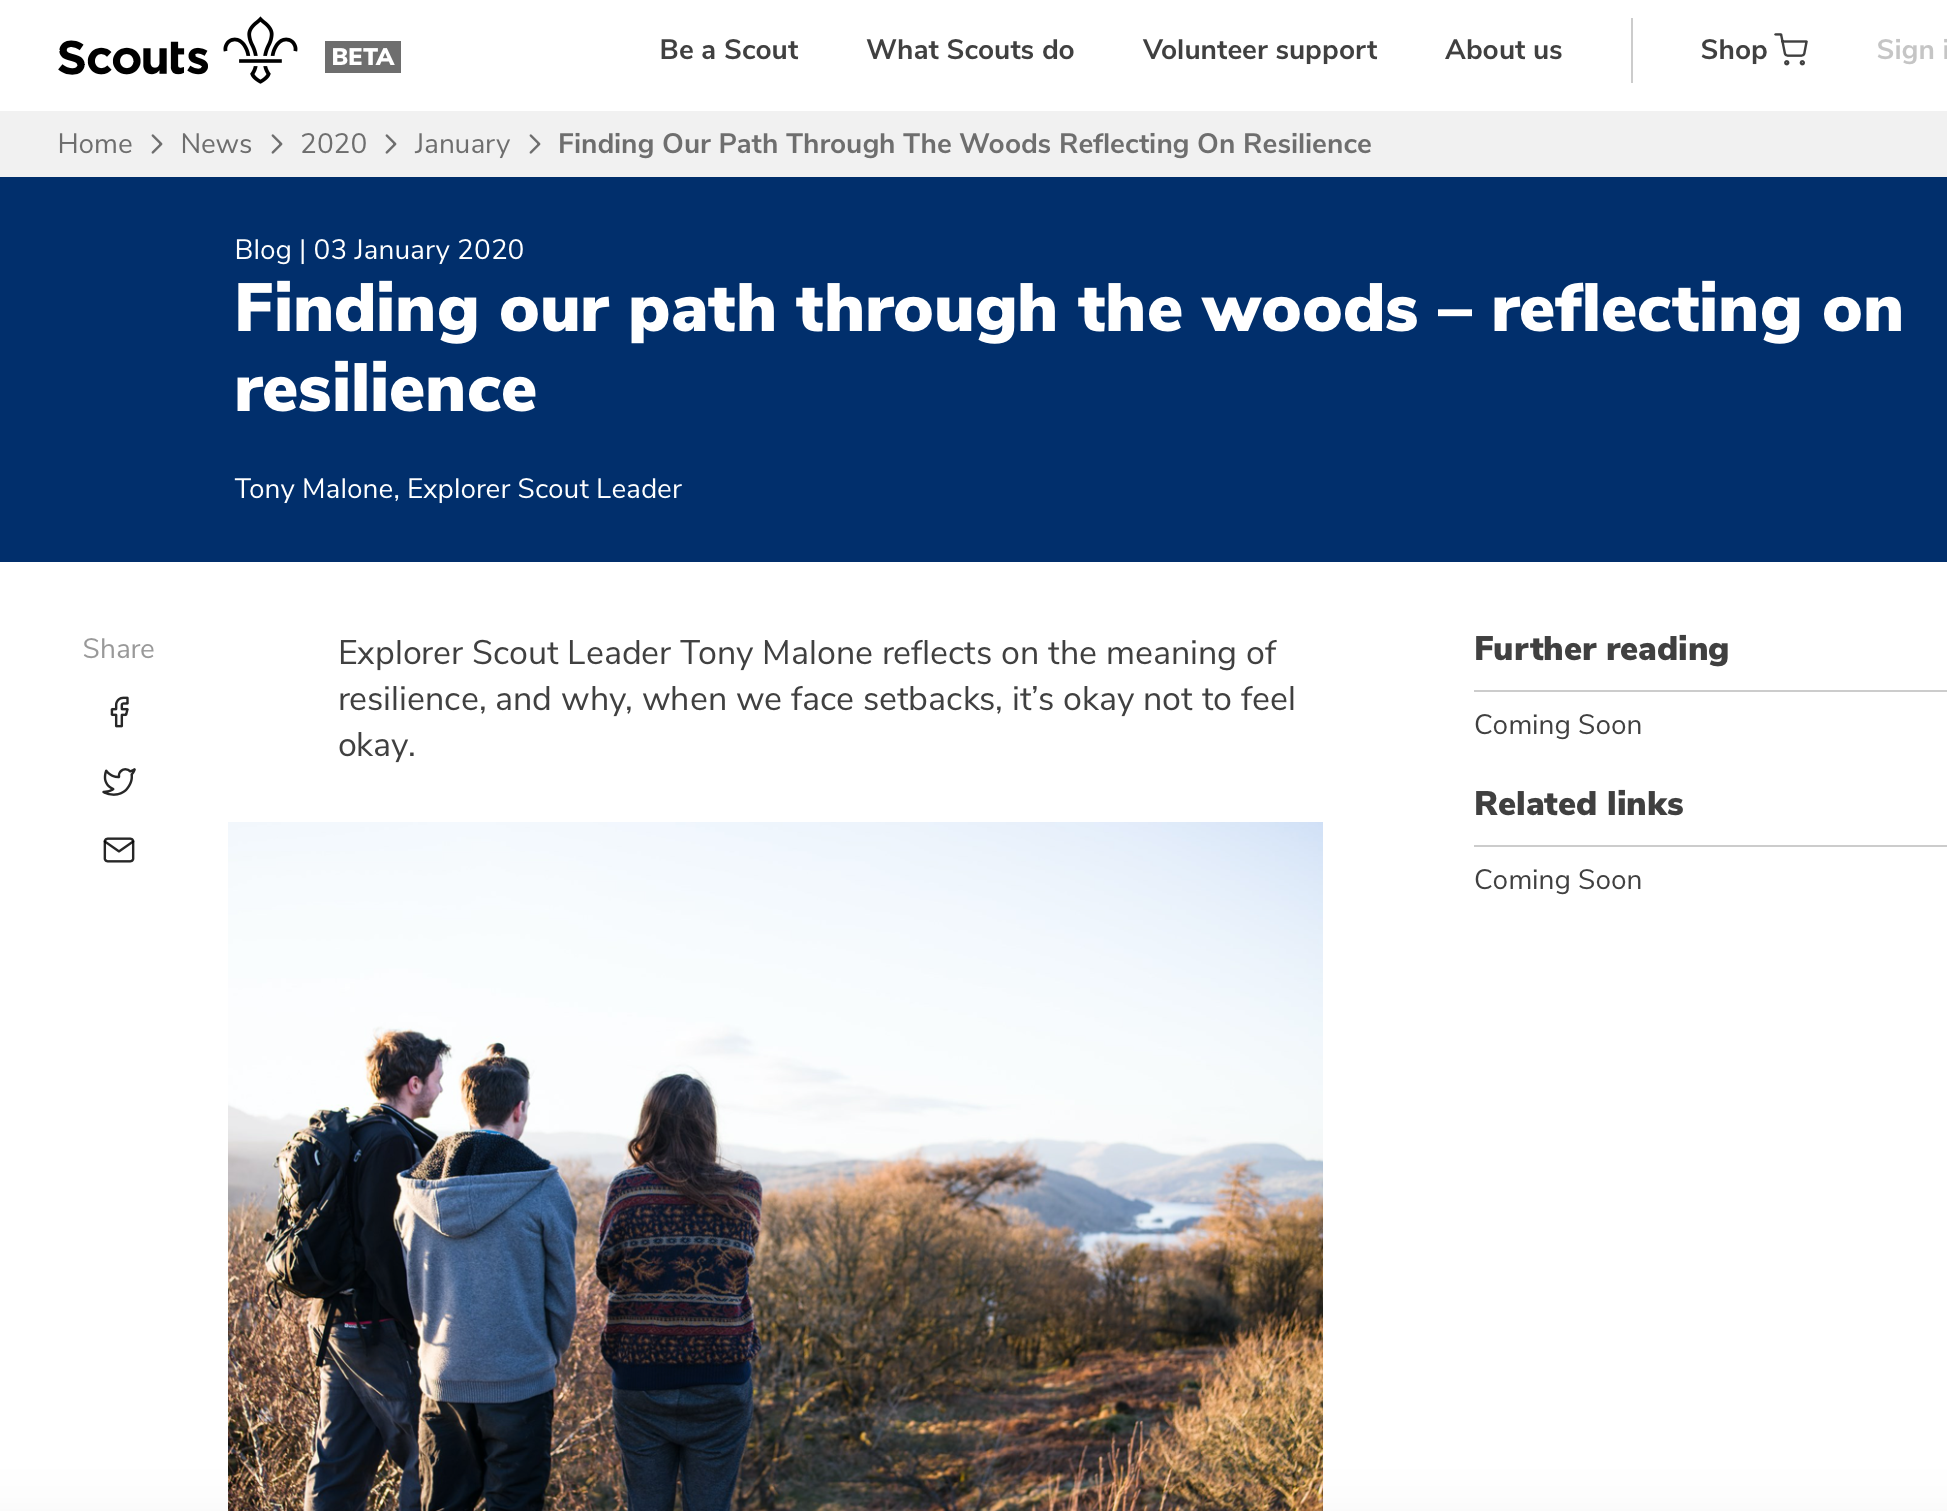 Finding our path through the woods – reflecting on resilience